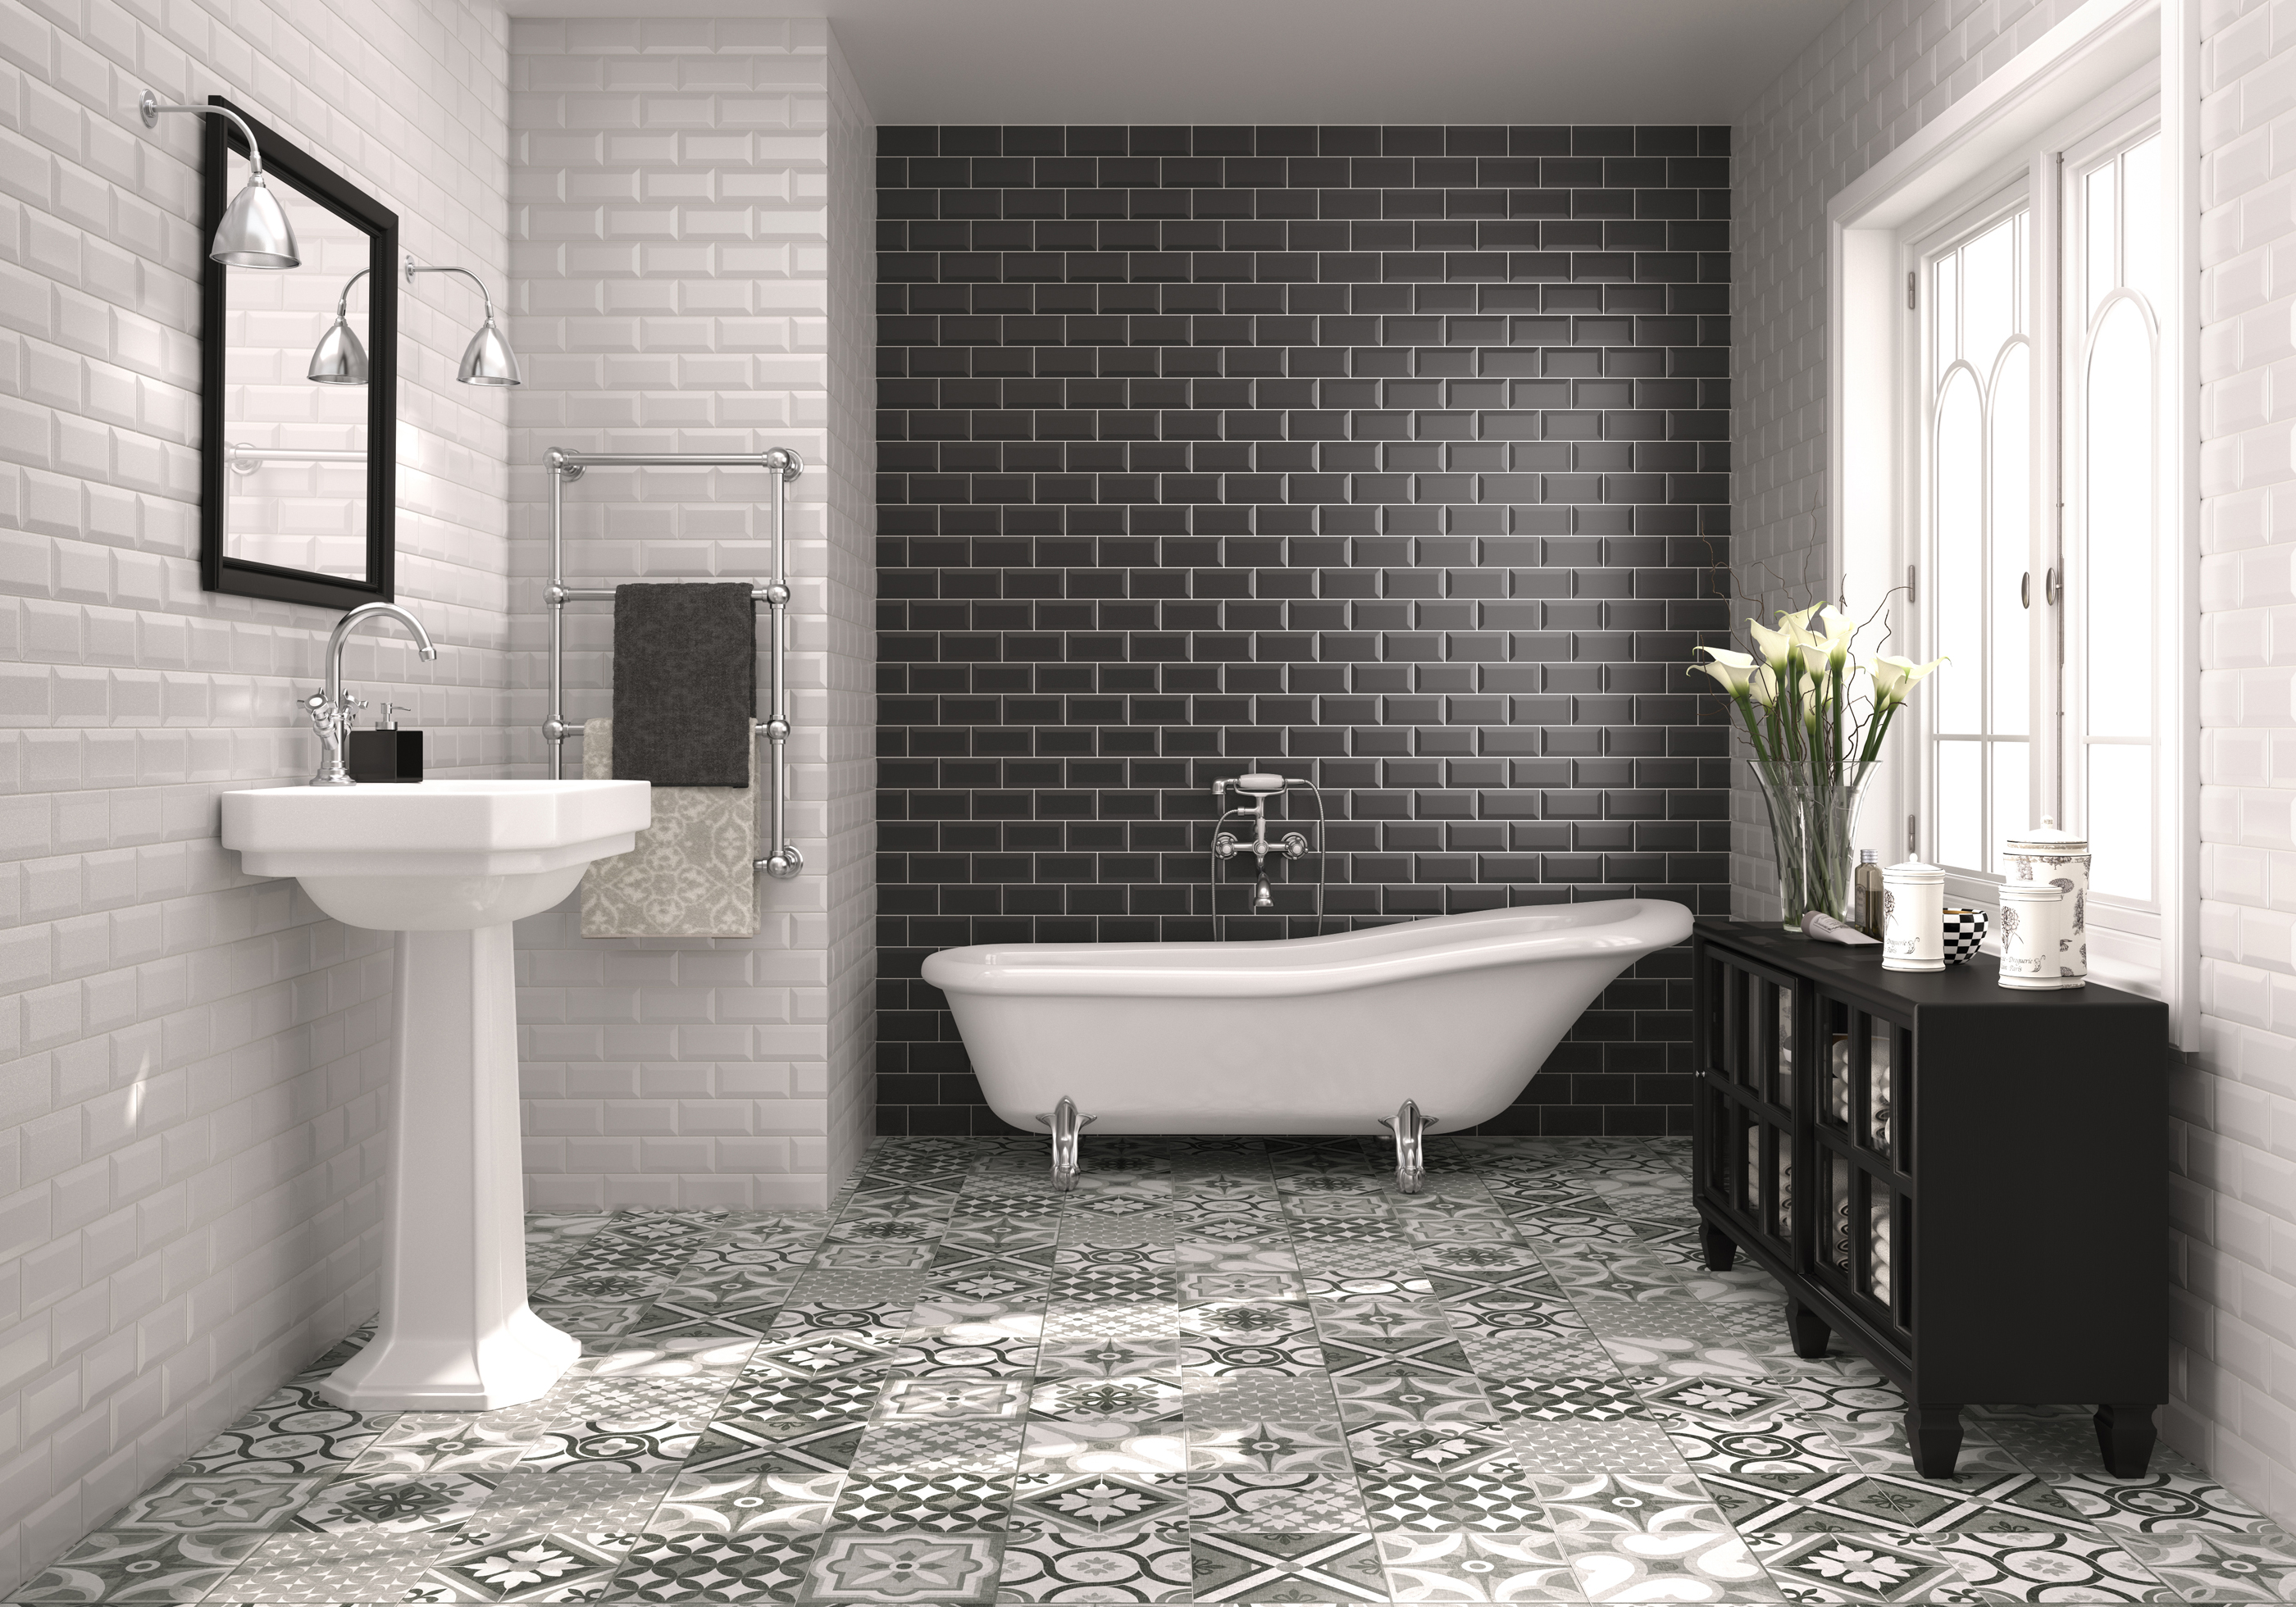 How to make a statement with bold bathroom tiles - Reader\'s Digest